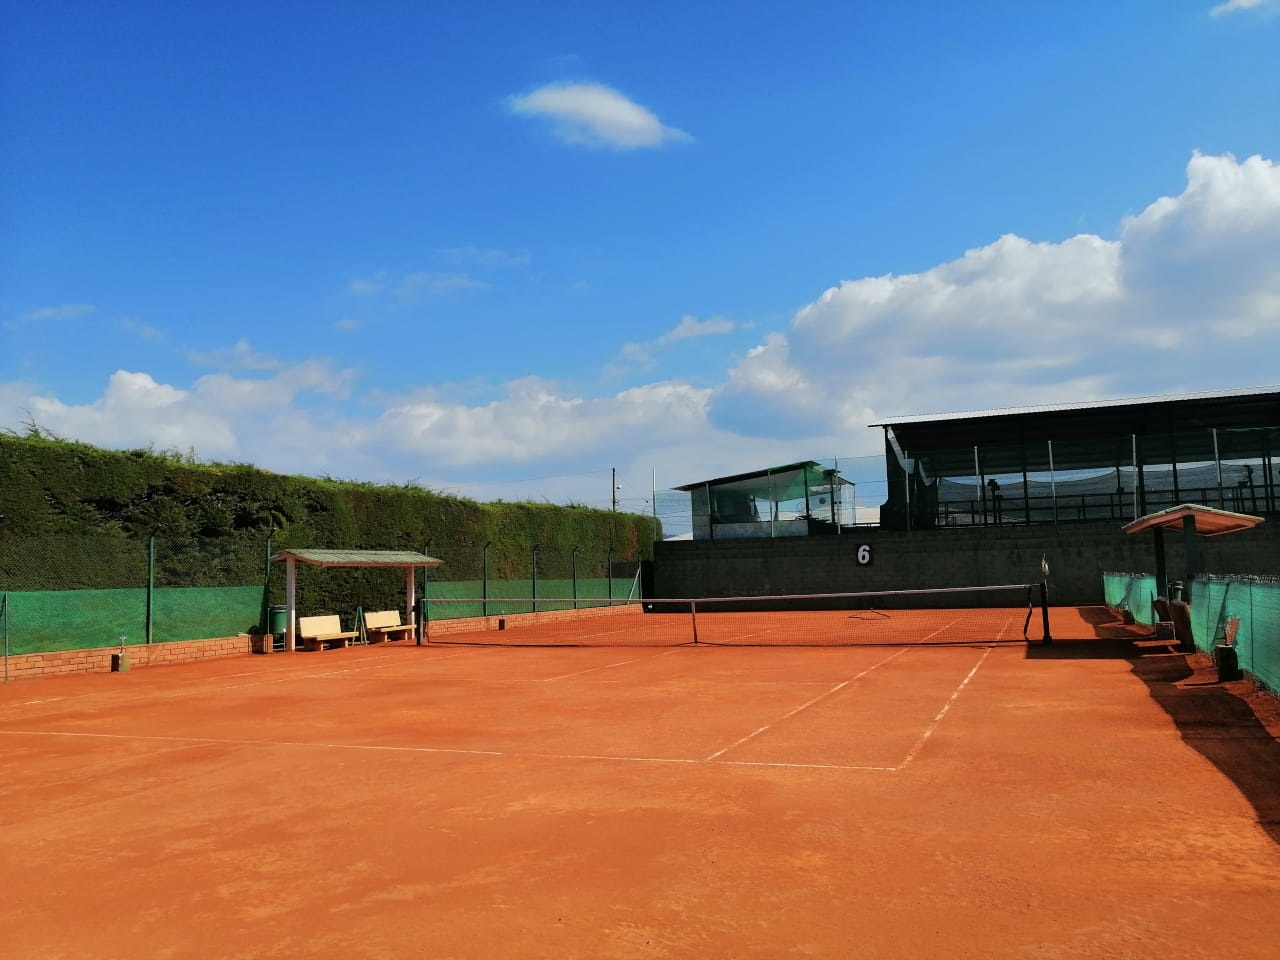 canchas de tenis nov